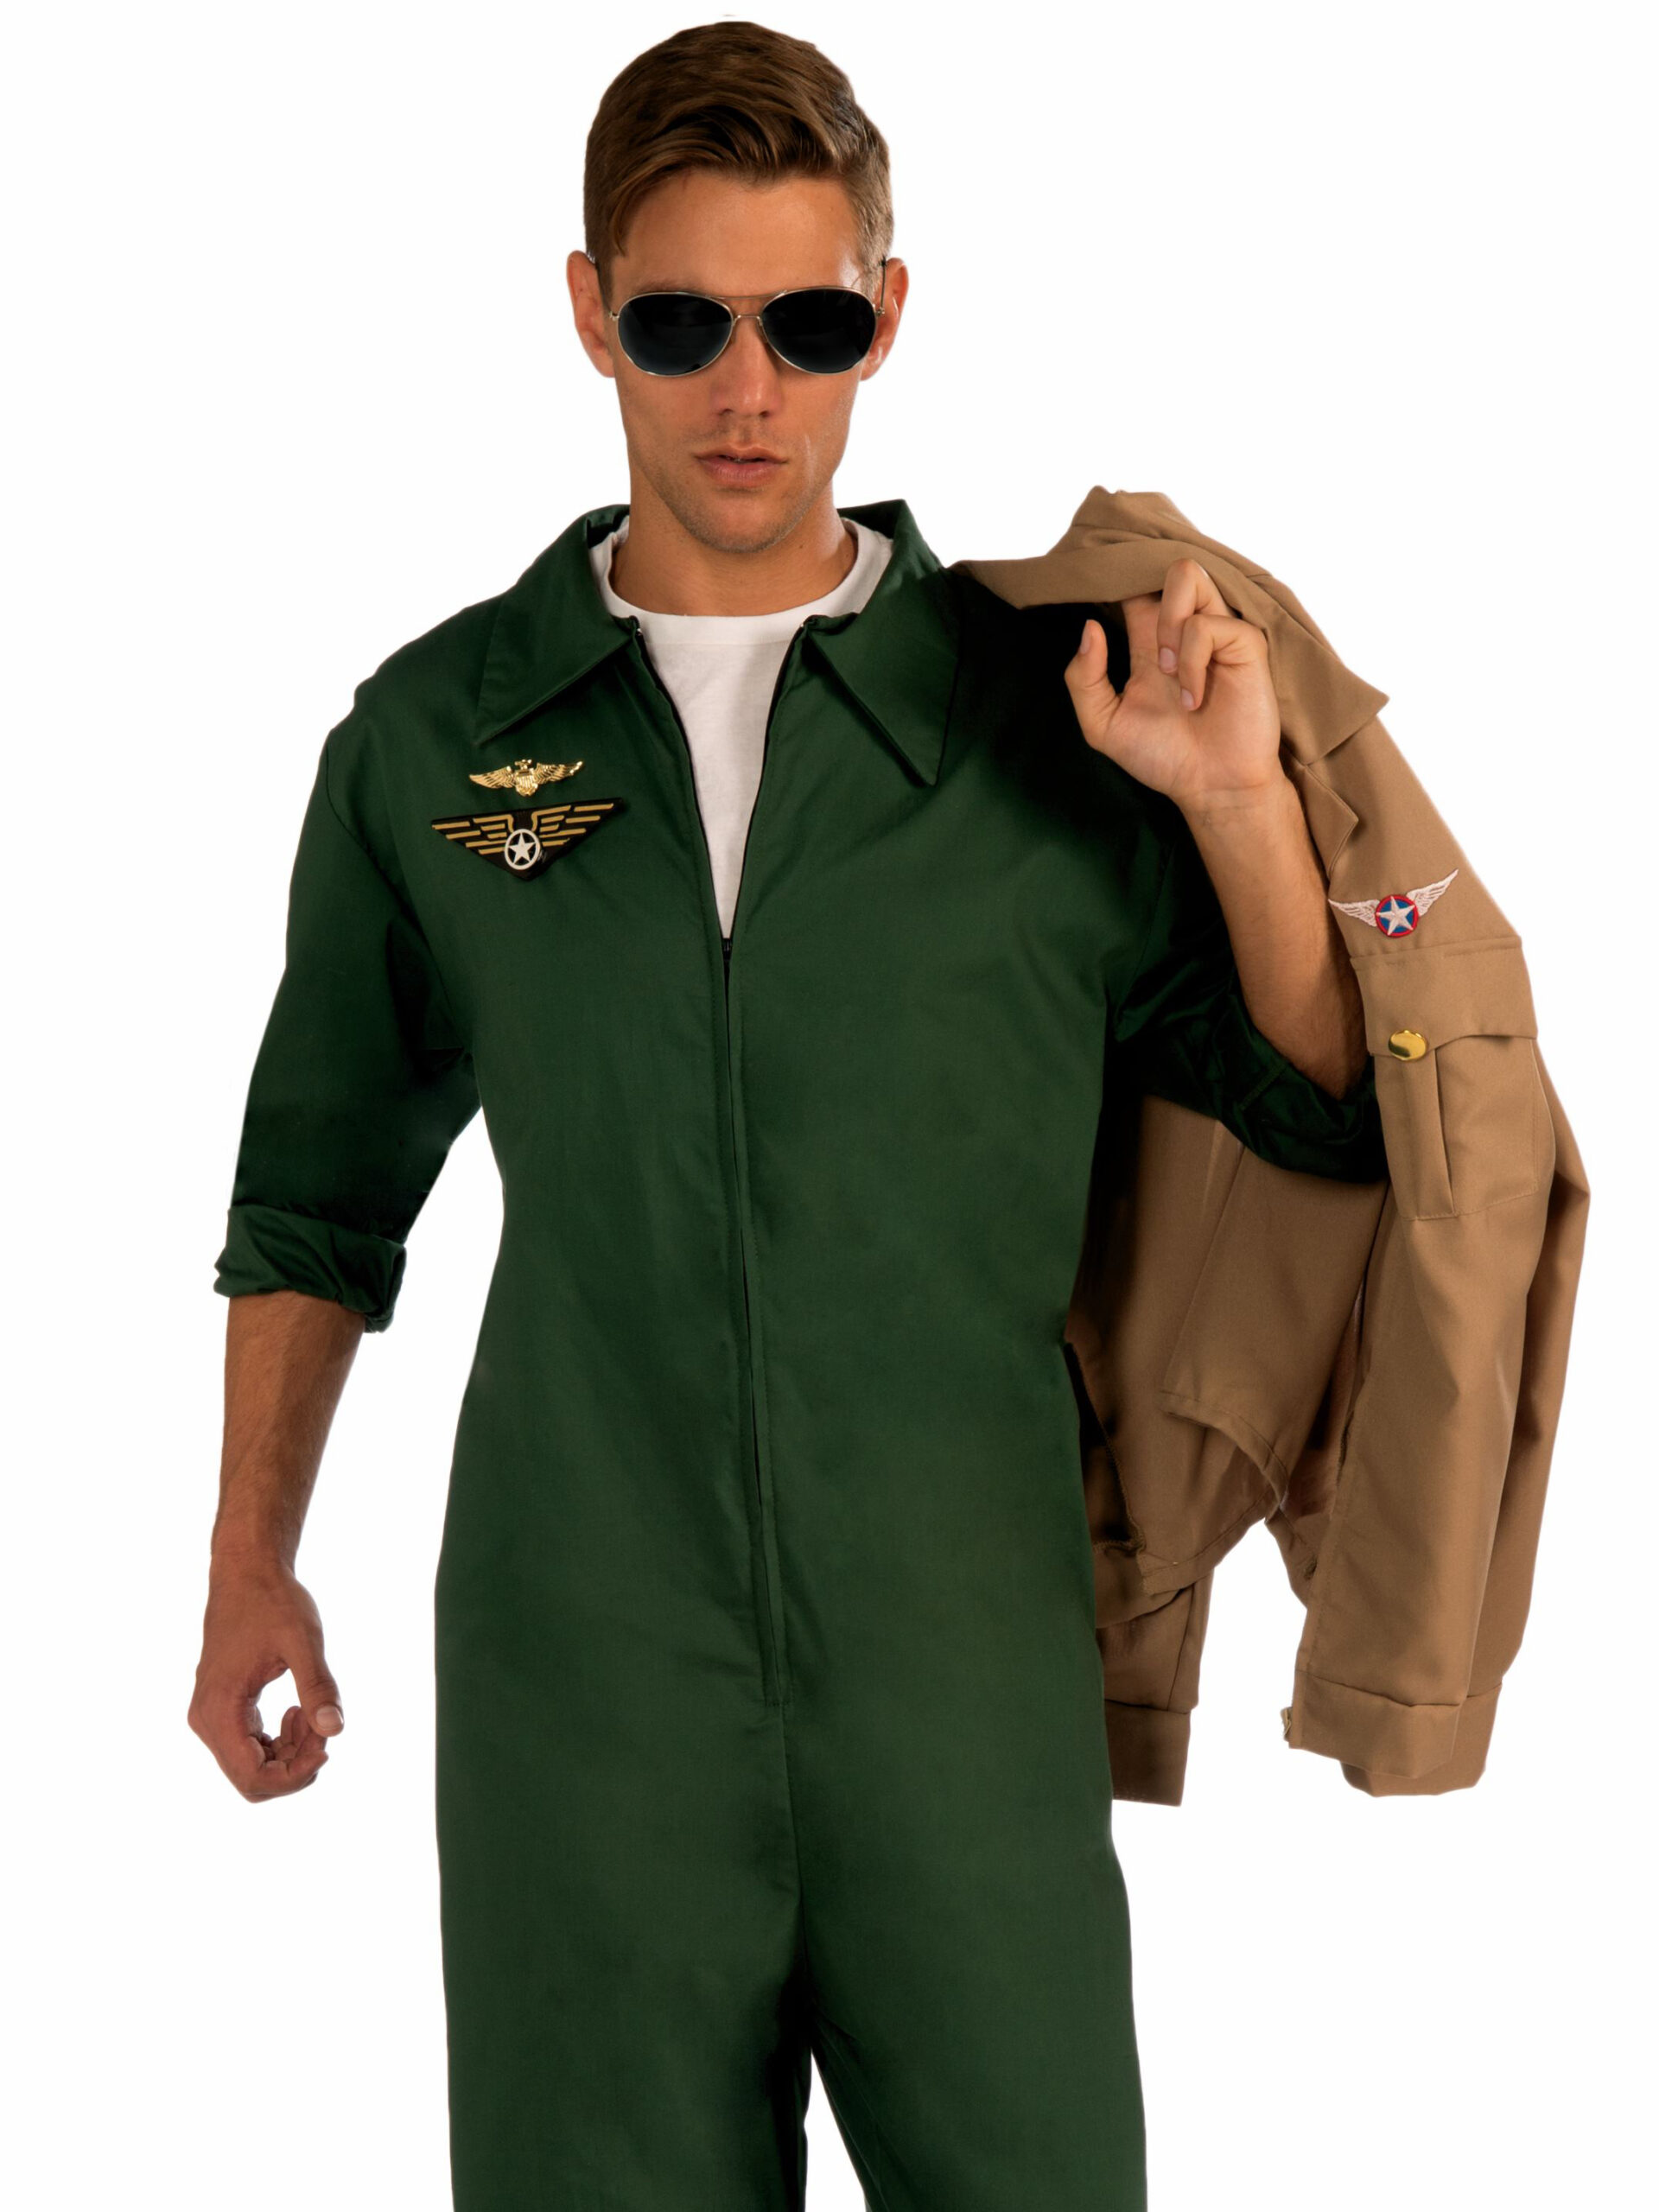 adult male in green fighter pilot jumpsuit with bomber jacket